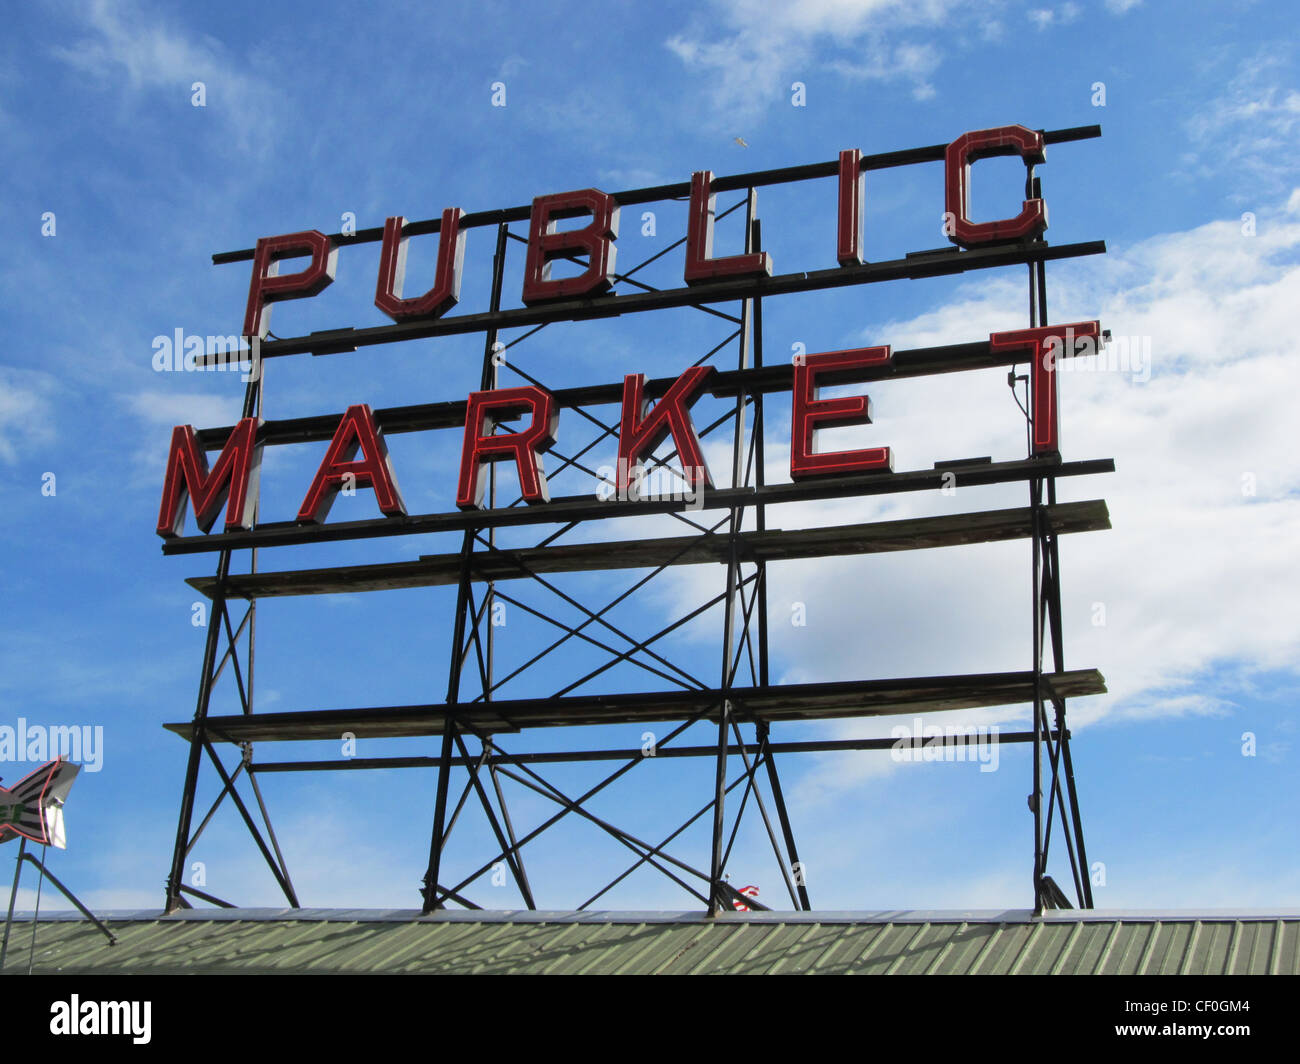 Sign for Pike Place Market, Seattle Washington with blue sky background. - Stock Image